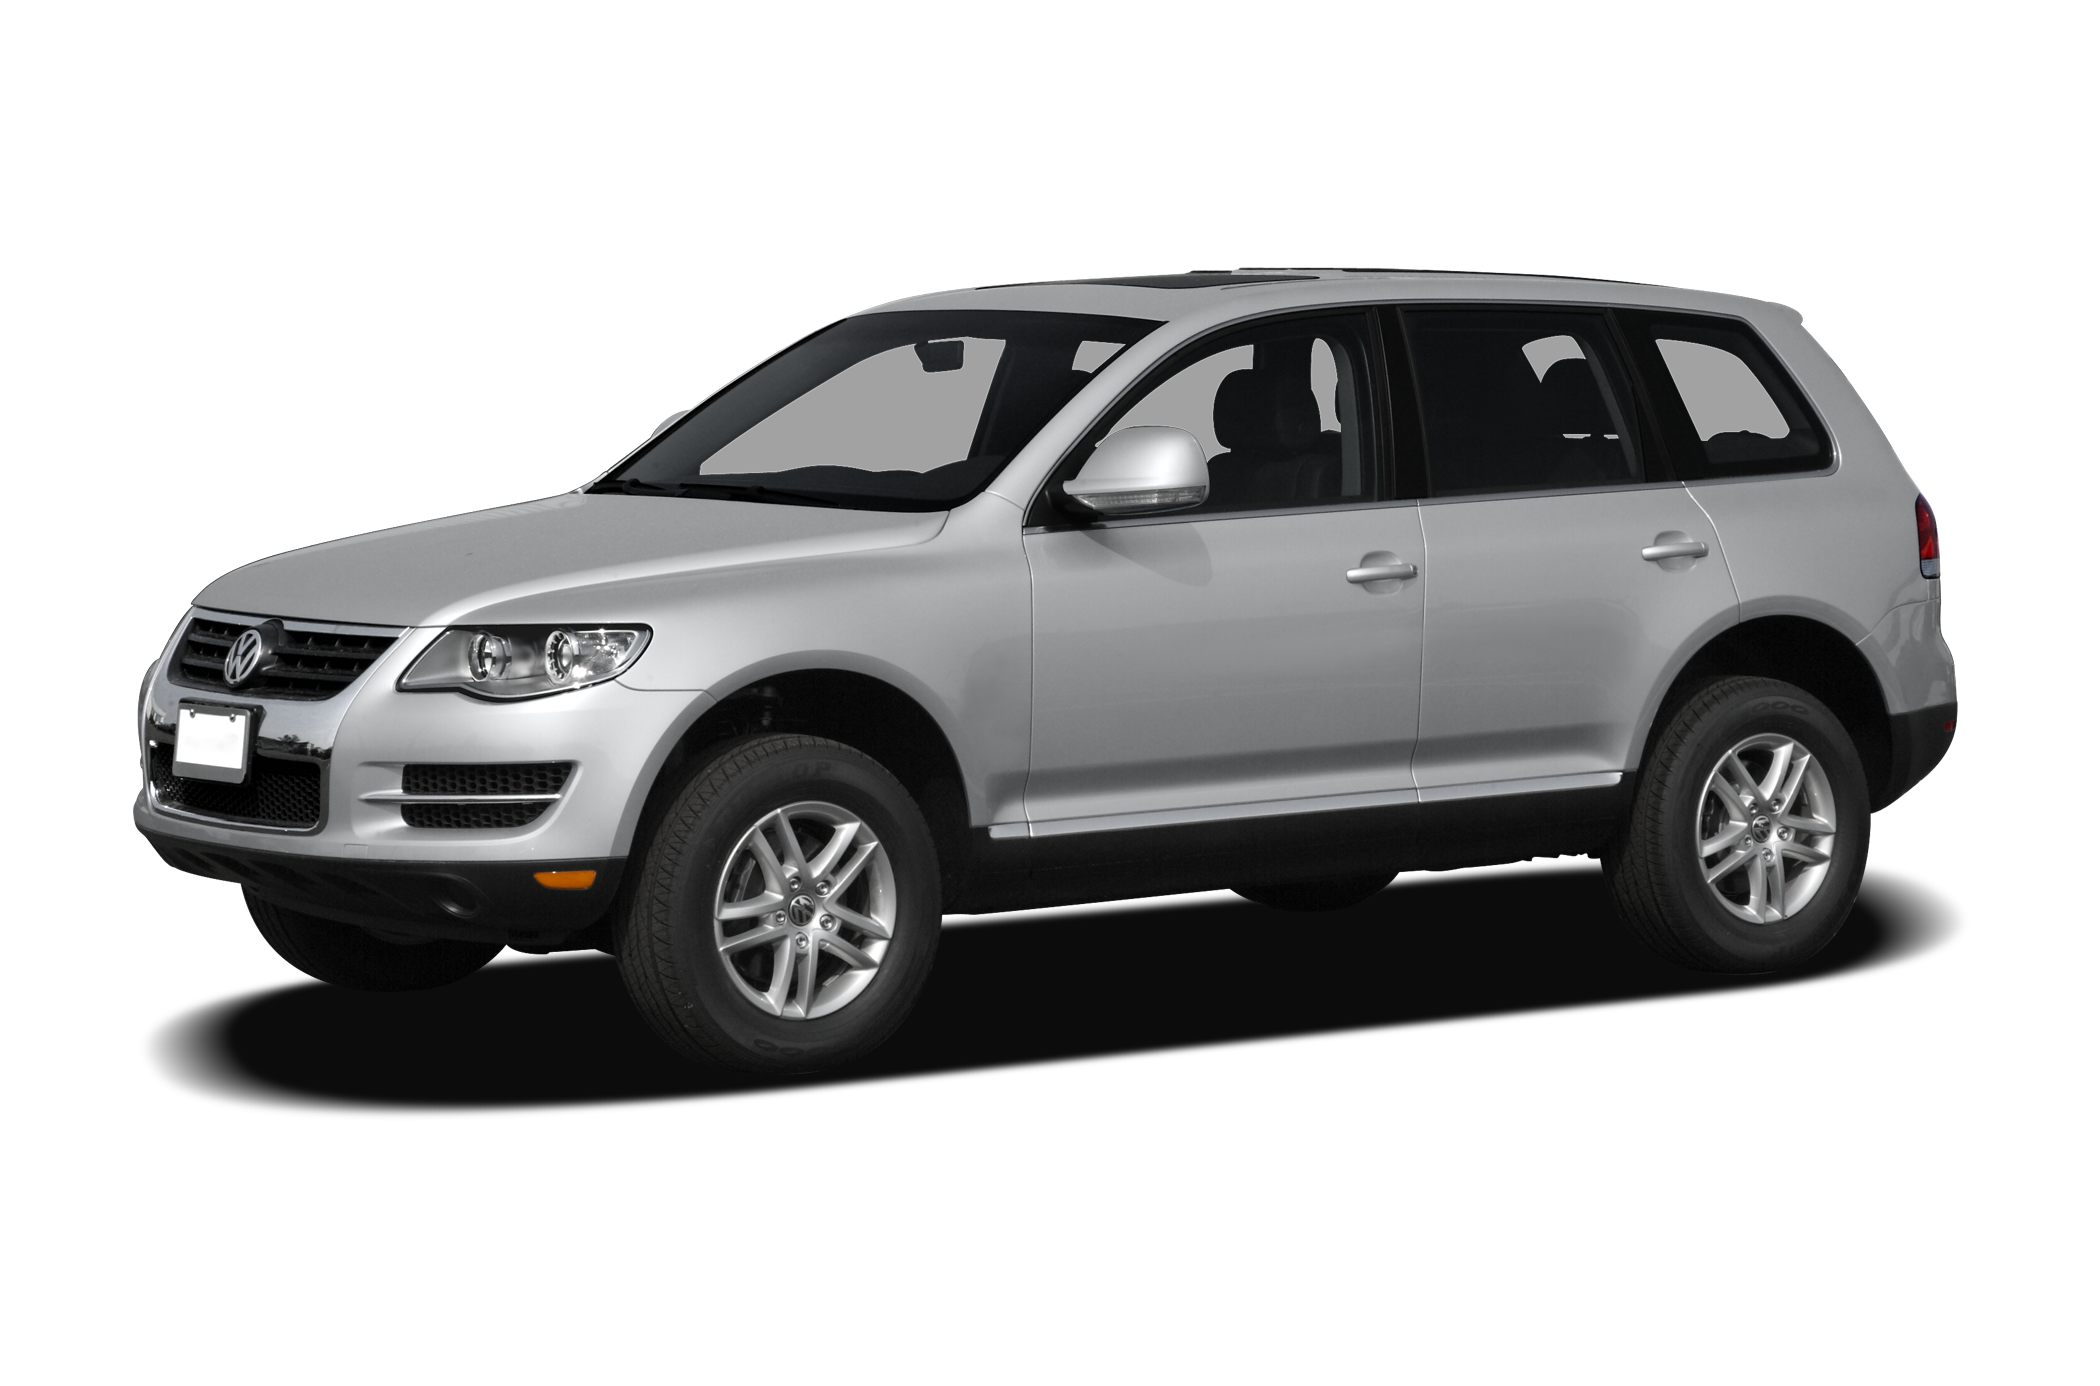 2008 Volkswagen Touareg 2 Vr6 Fsi 4dr All Wheel Drive Specs And Prices